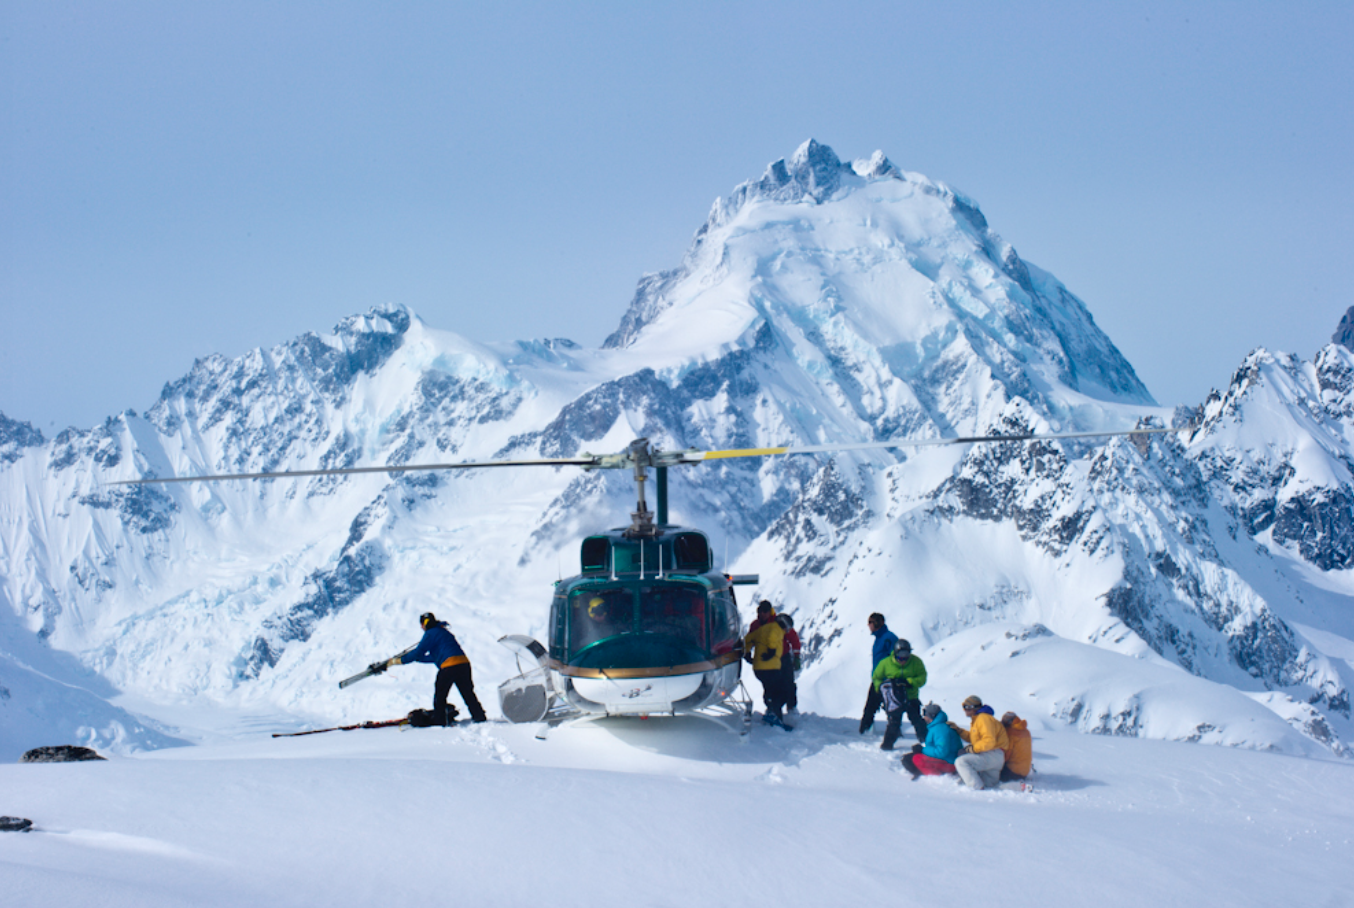 best heli skiing in bc with Heli Skiing on Whistler Bc additionally Ski Instructor Courses How To Be e A Ski Instructor furthermore 5 Reasons Why Heli Skiing Is One Of The Coolest Sports Around in addition Whistler moreover Fernie Gets 75cms Of Powder In June.